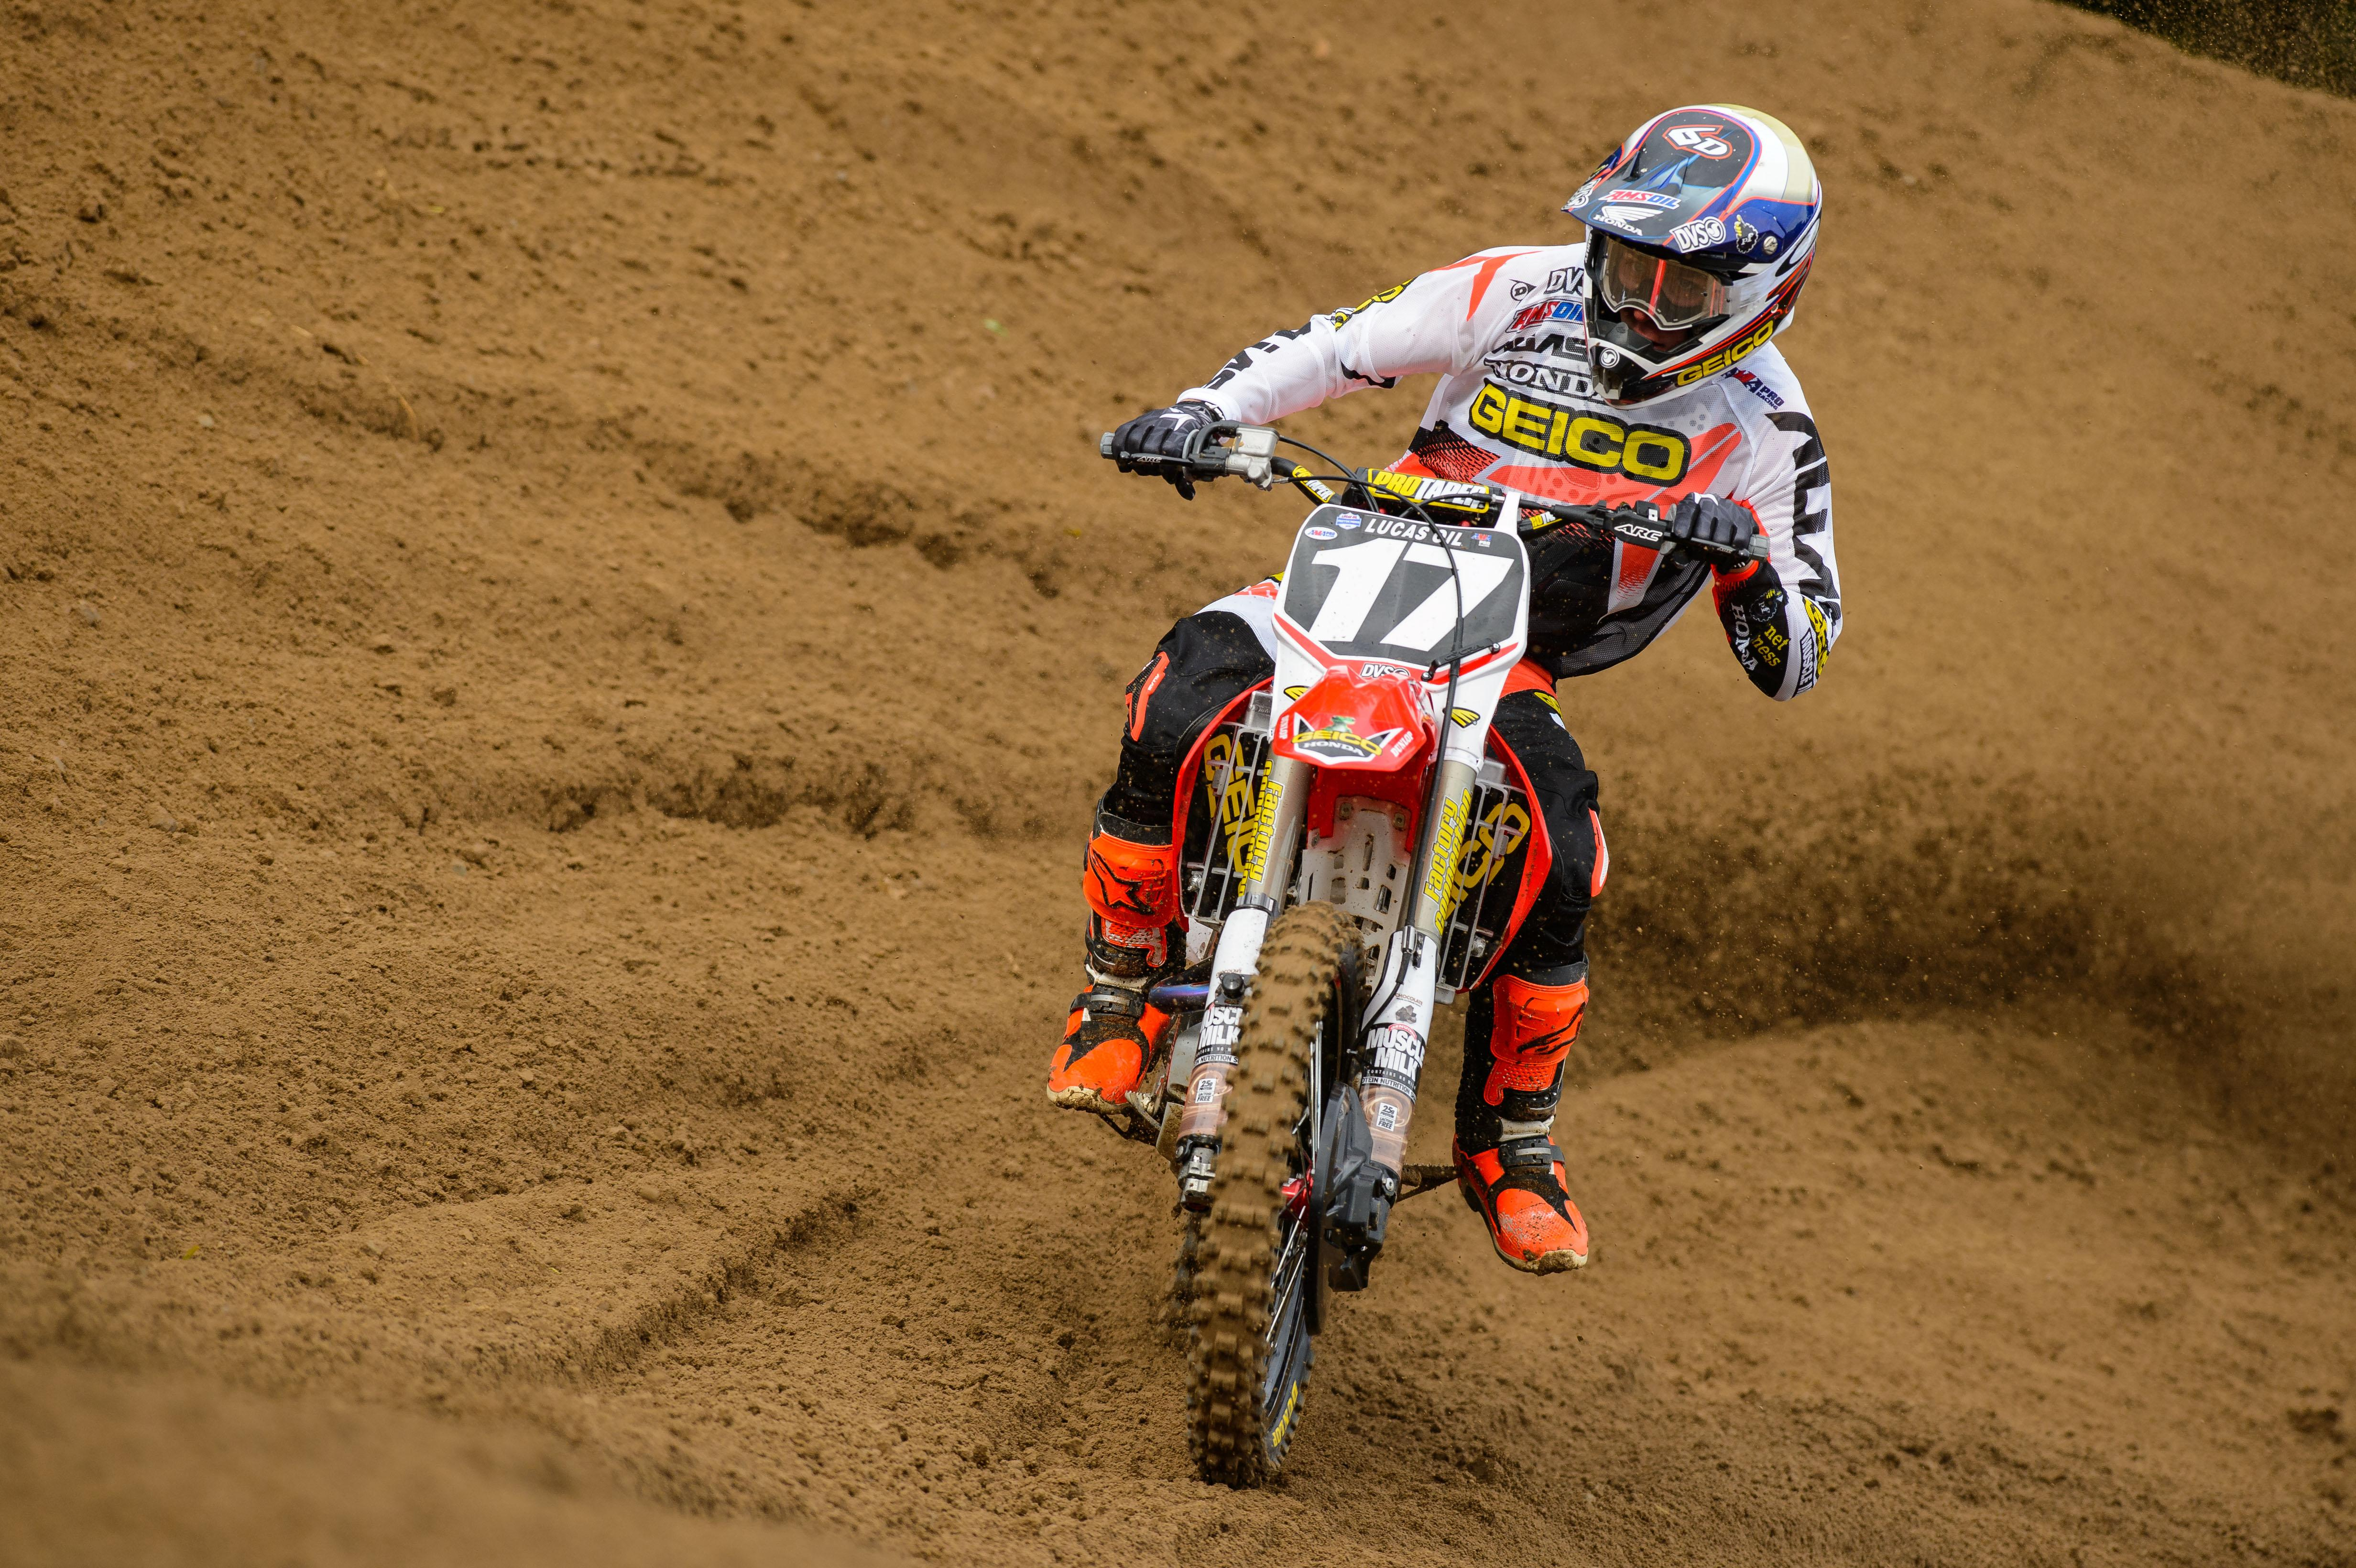 wallpaper.wiki-Motocross-KTM-Bike-HD-Wallpapers-Desktop-backgrounds ...